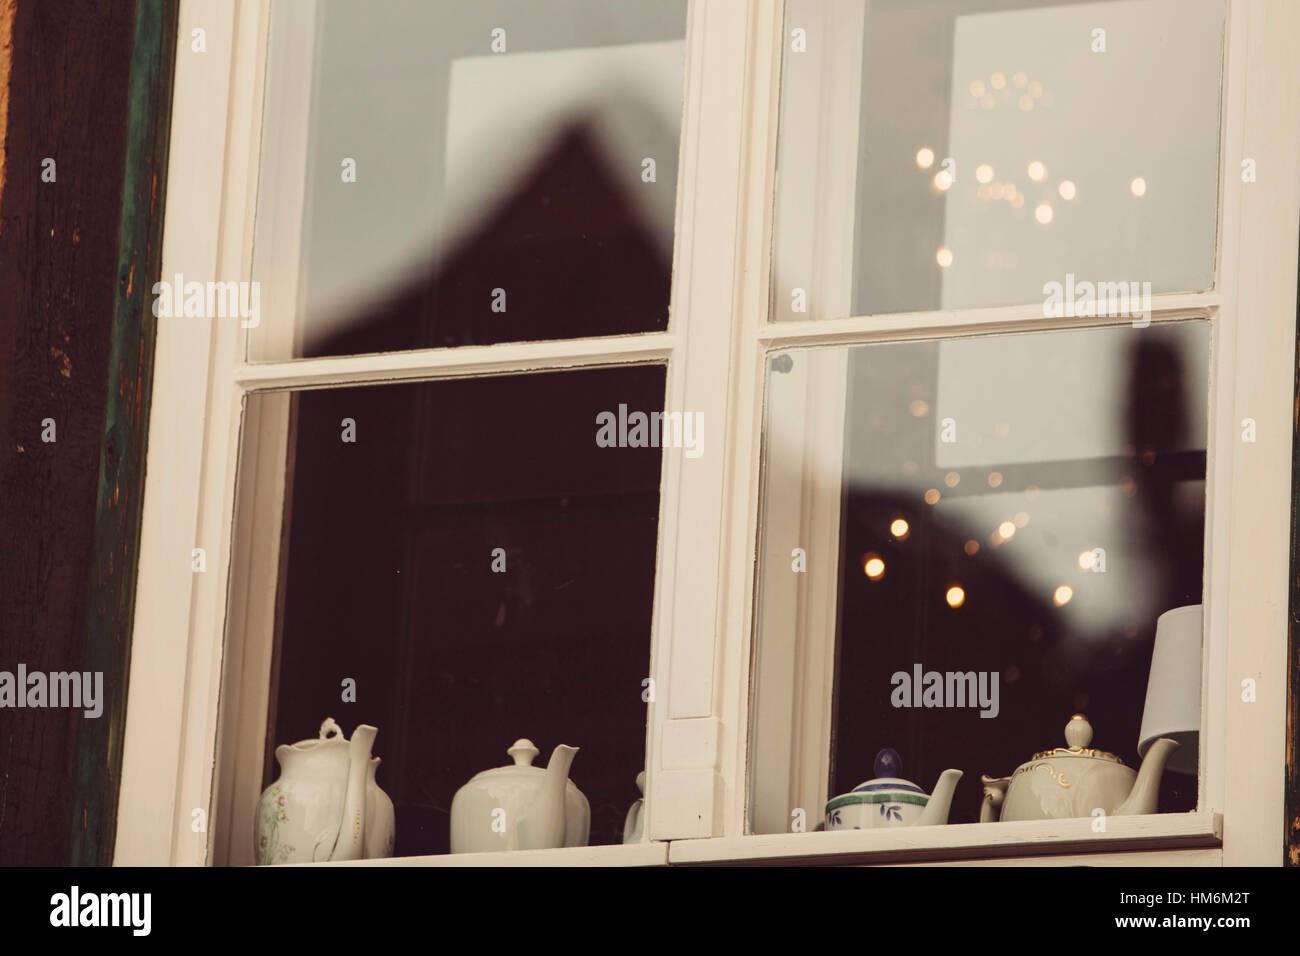 View in a window with teapots - Stock Image